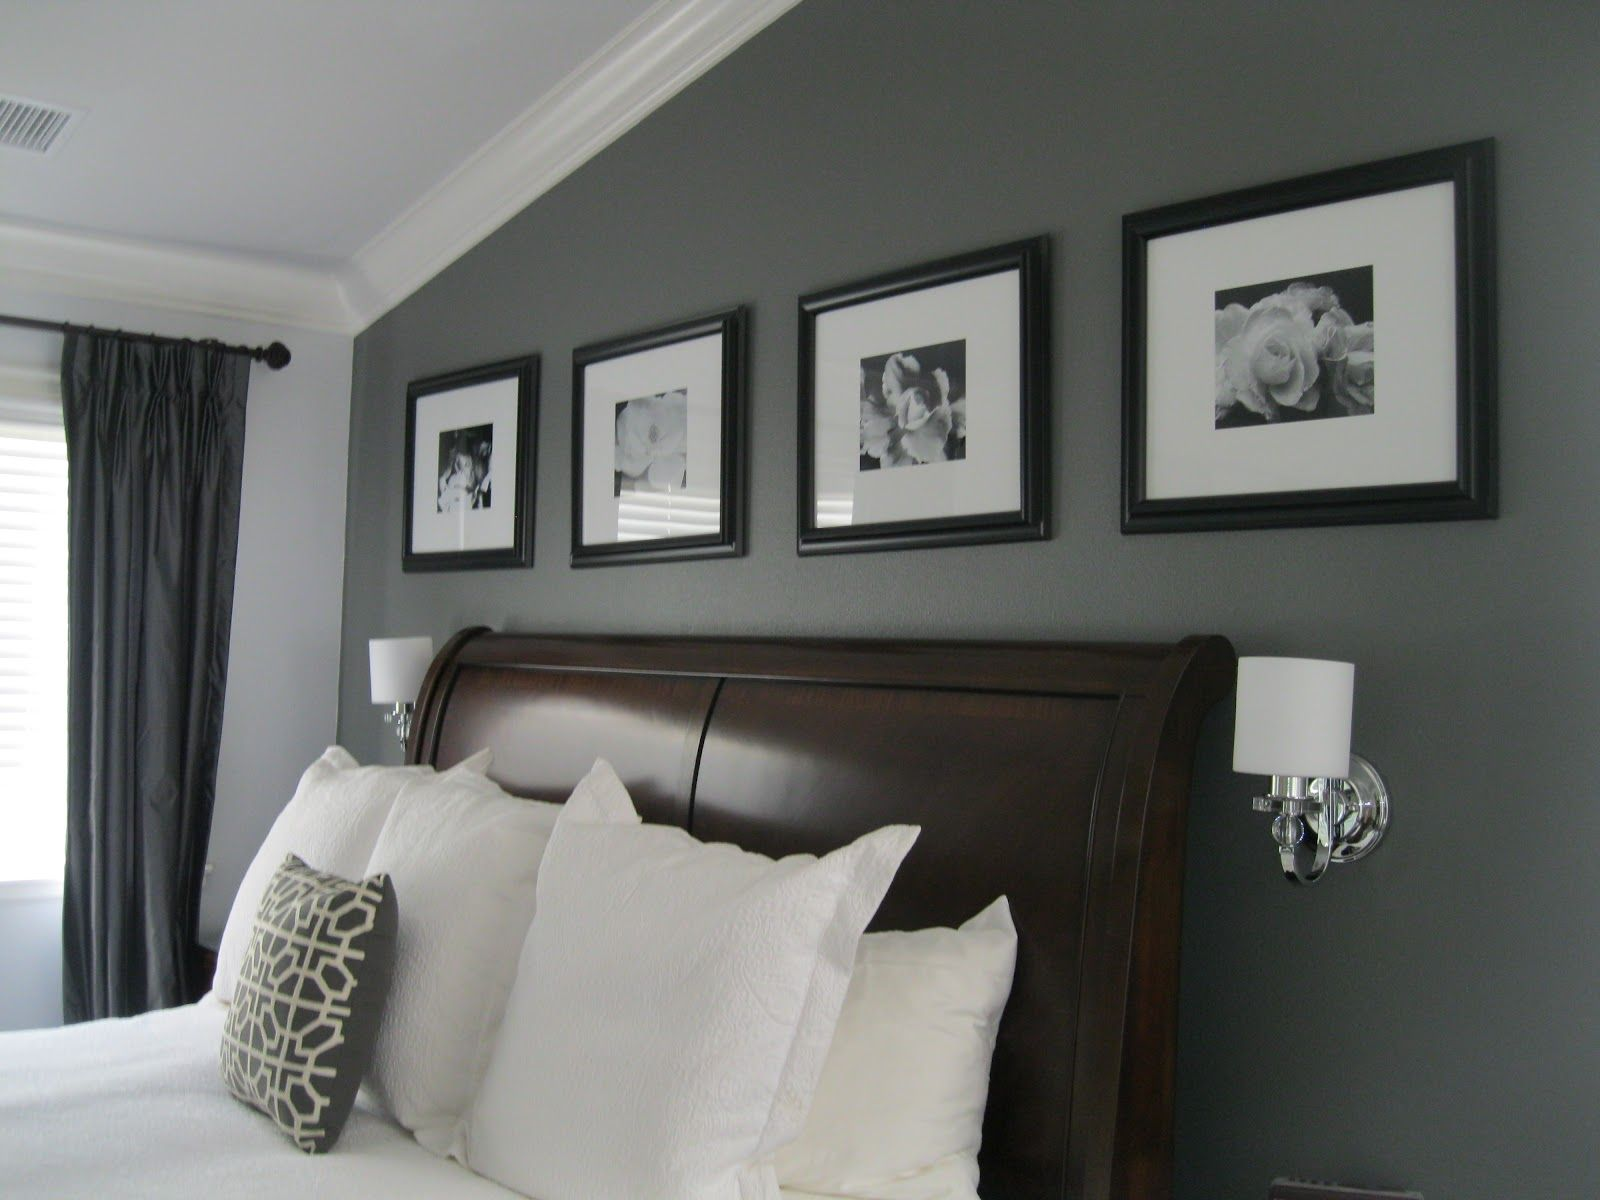 Bedroom wall decorating ideas picture frames - 17 Best Ideas About Dark Wood Bed On Pinterest Dark Wood Bed Frame Navy Master Bedroom And Navy Bedrooms